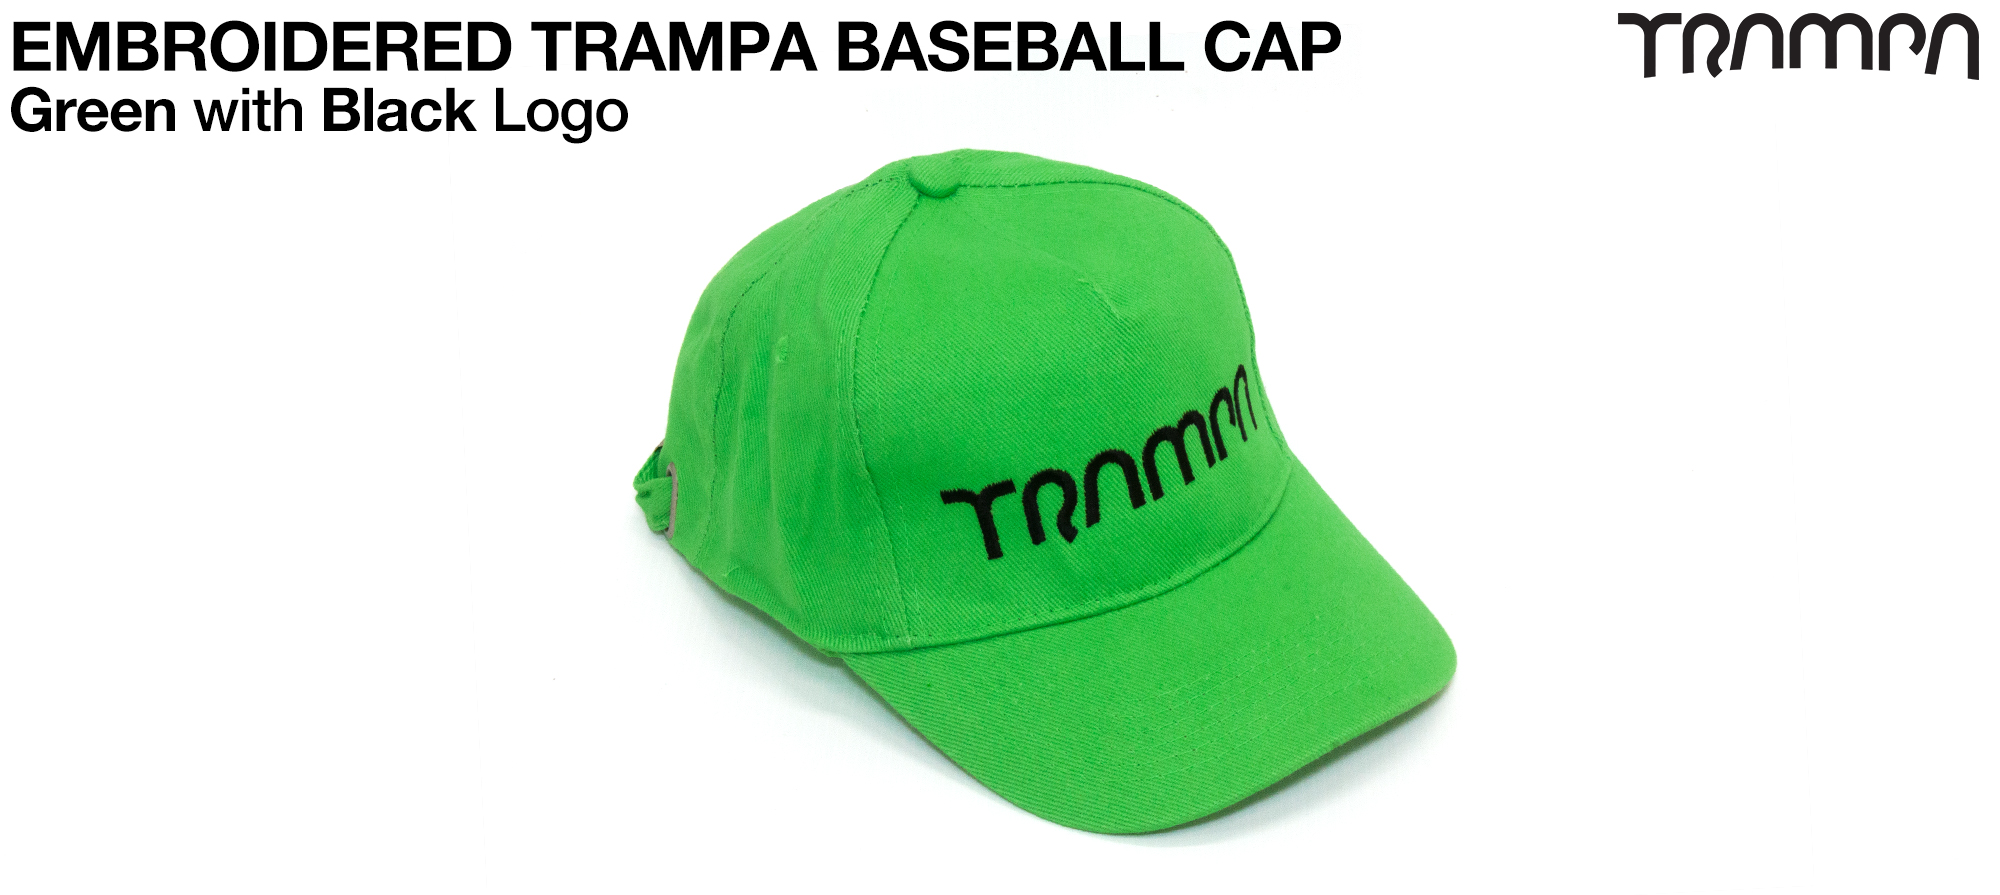 GREEN Baseball Cap with BLACK logo embroidered